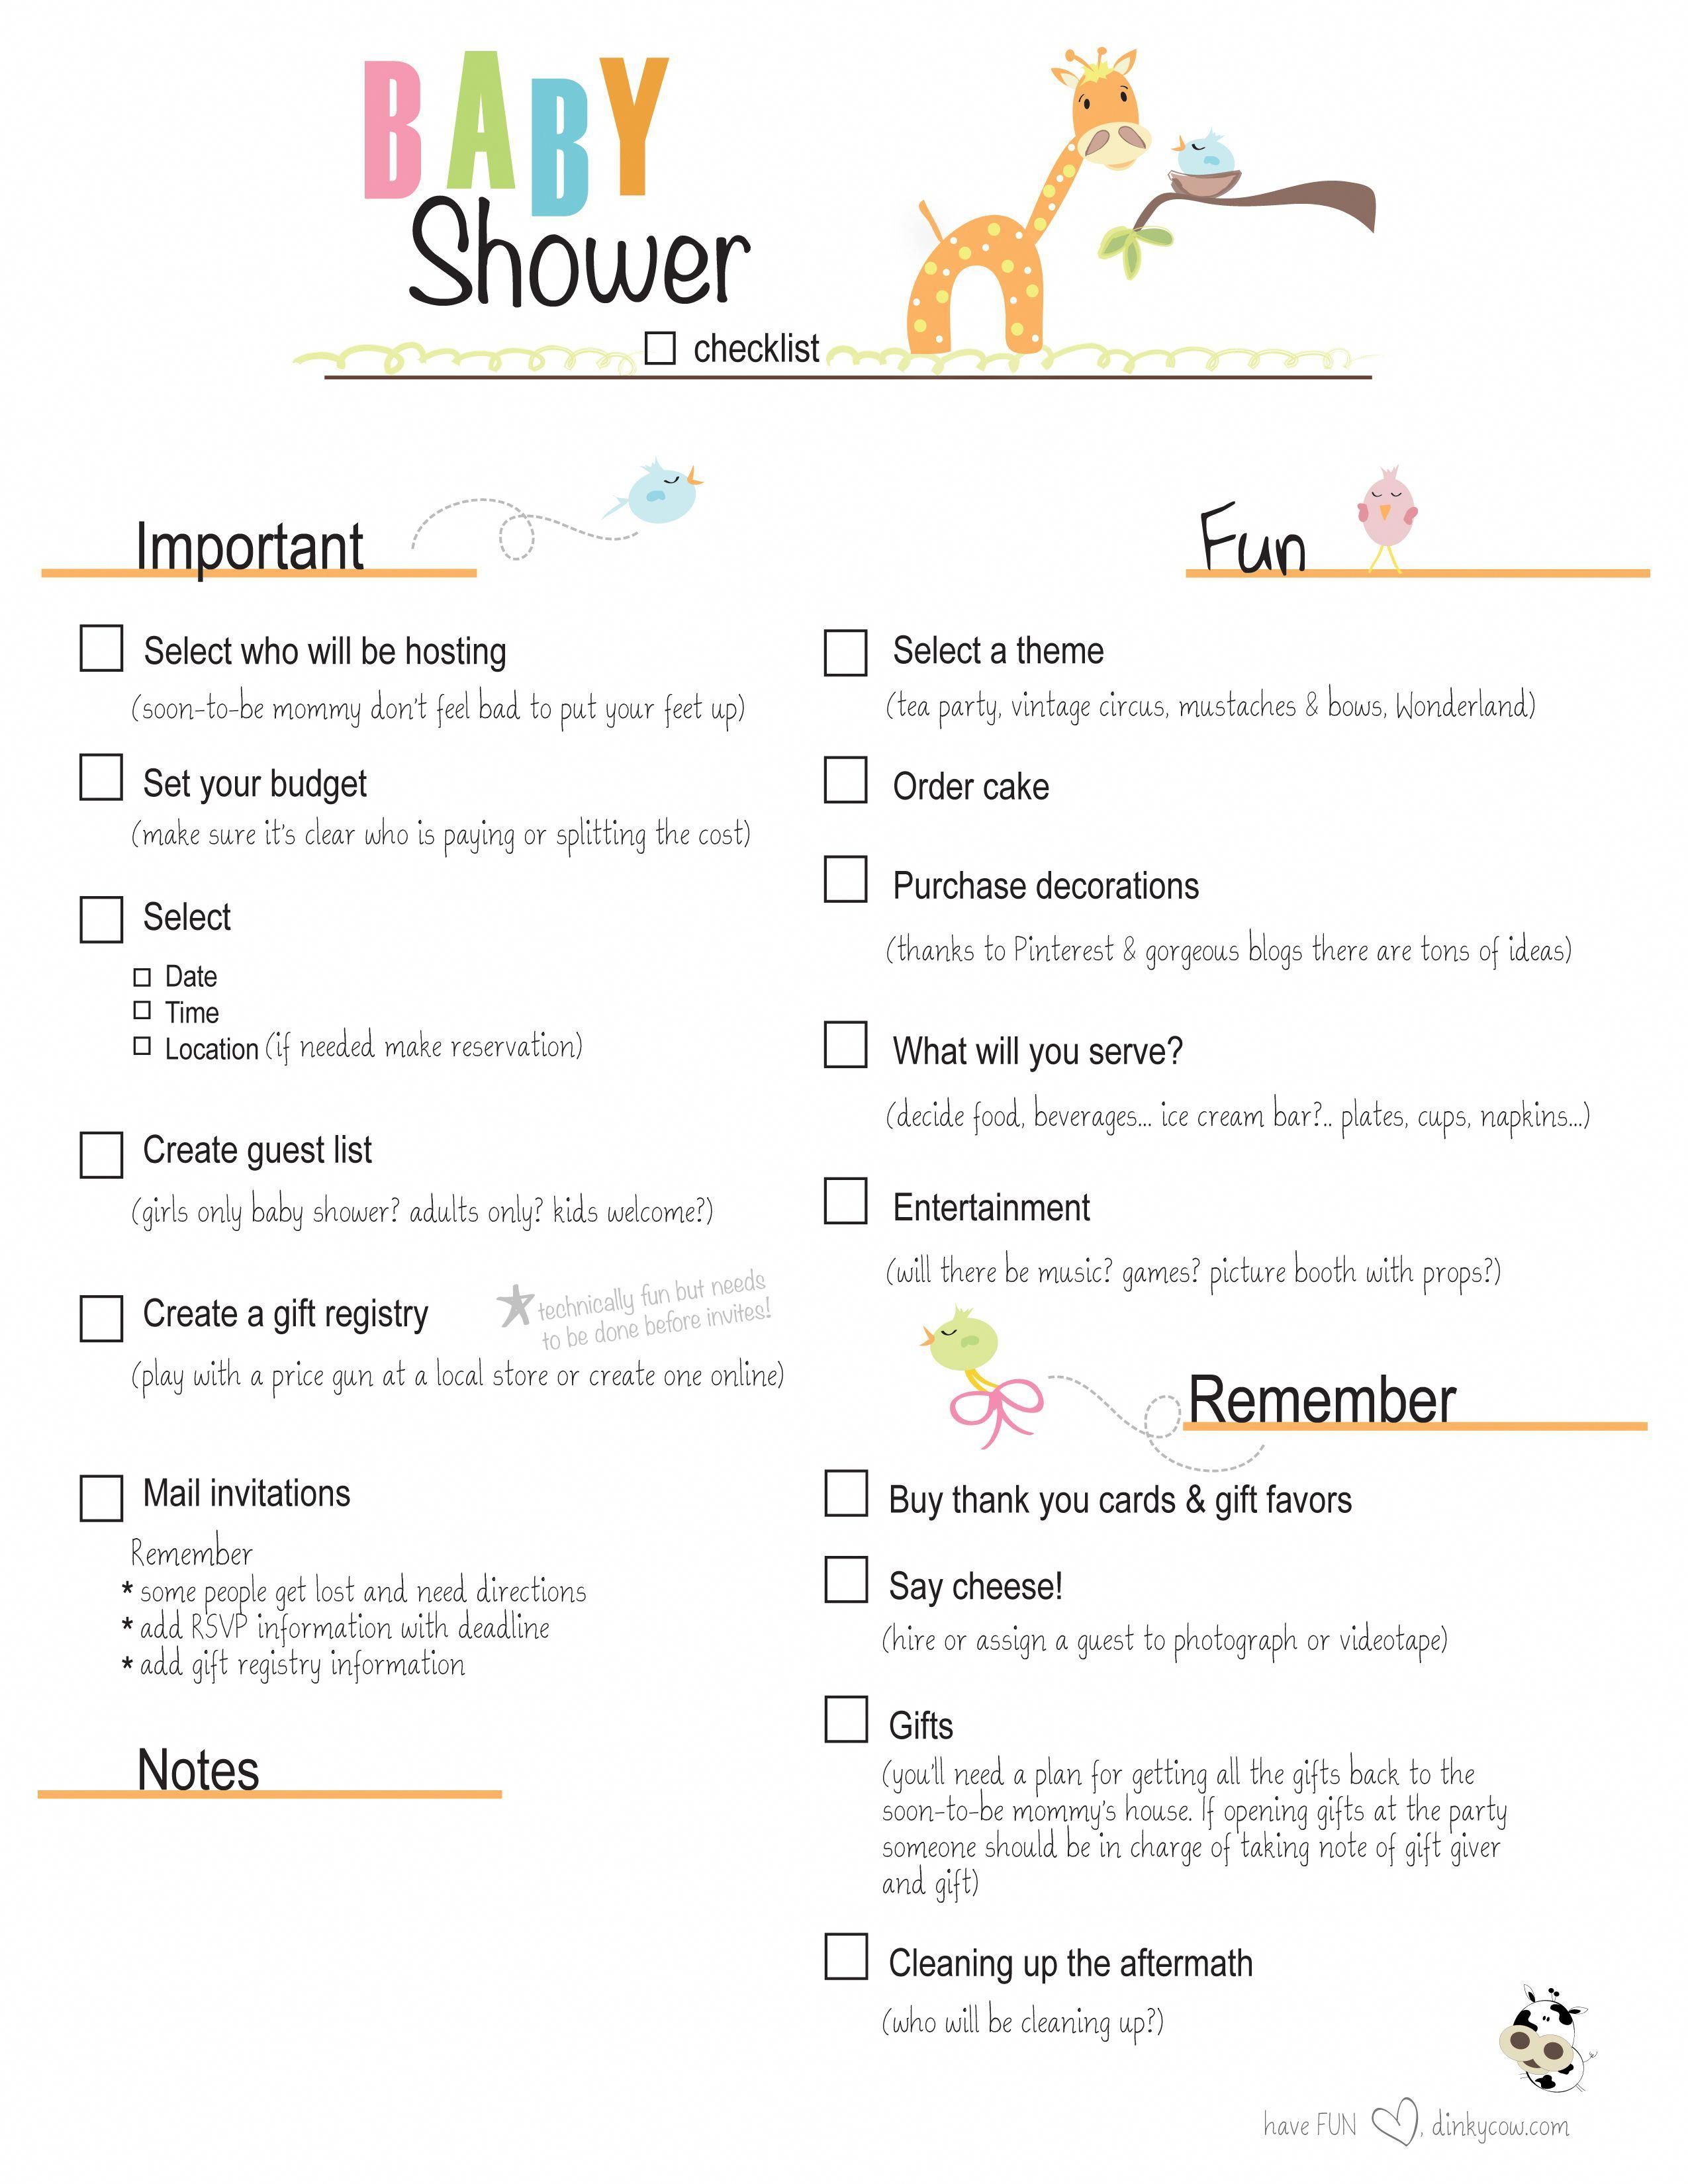 Free Printable Baby Shower Checklist